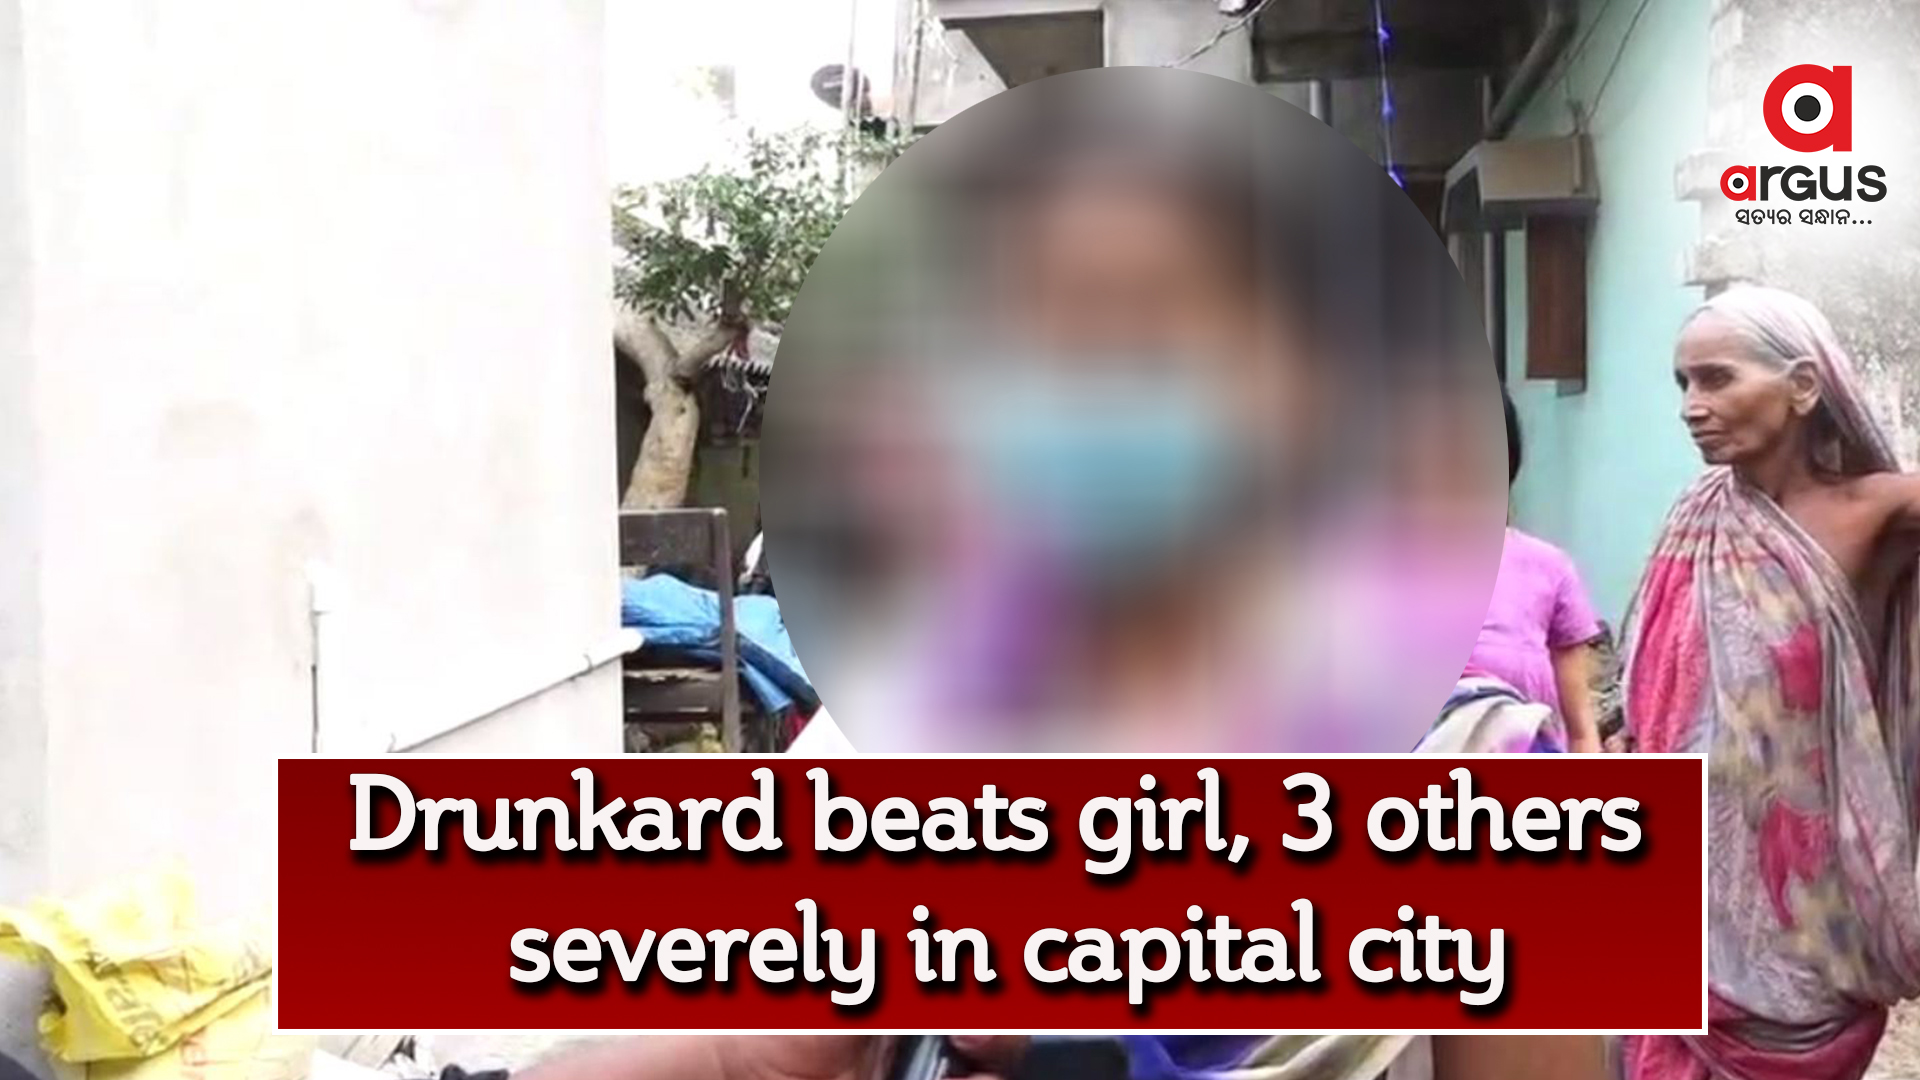 Drunkard beats girl, 3 others severely in capital city